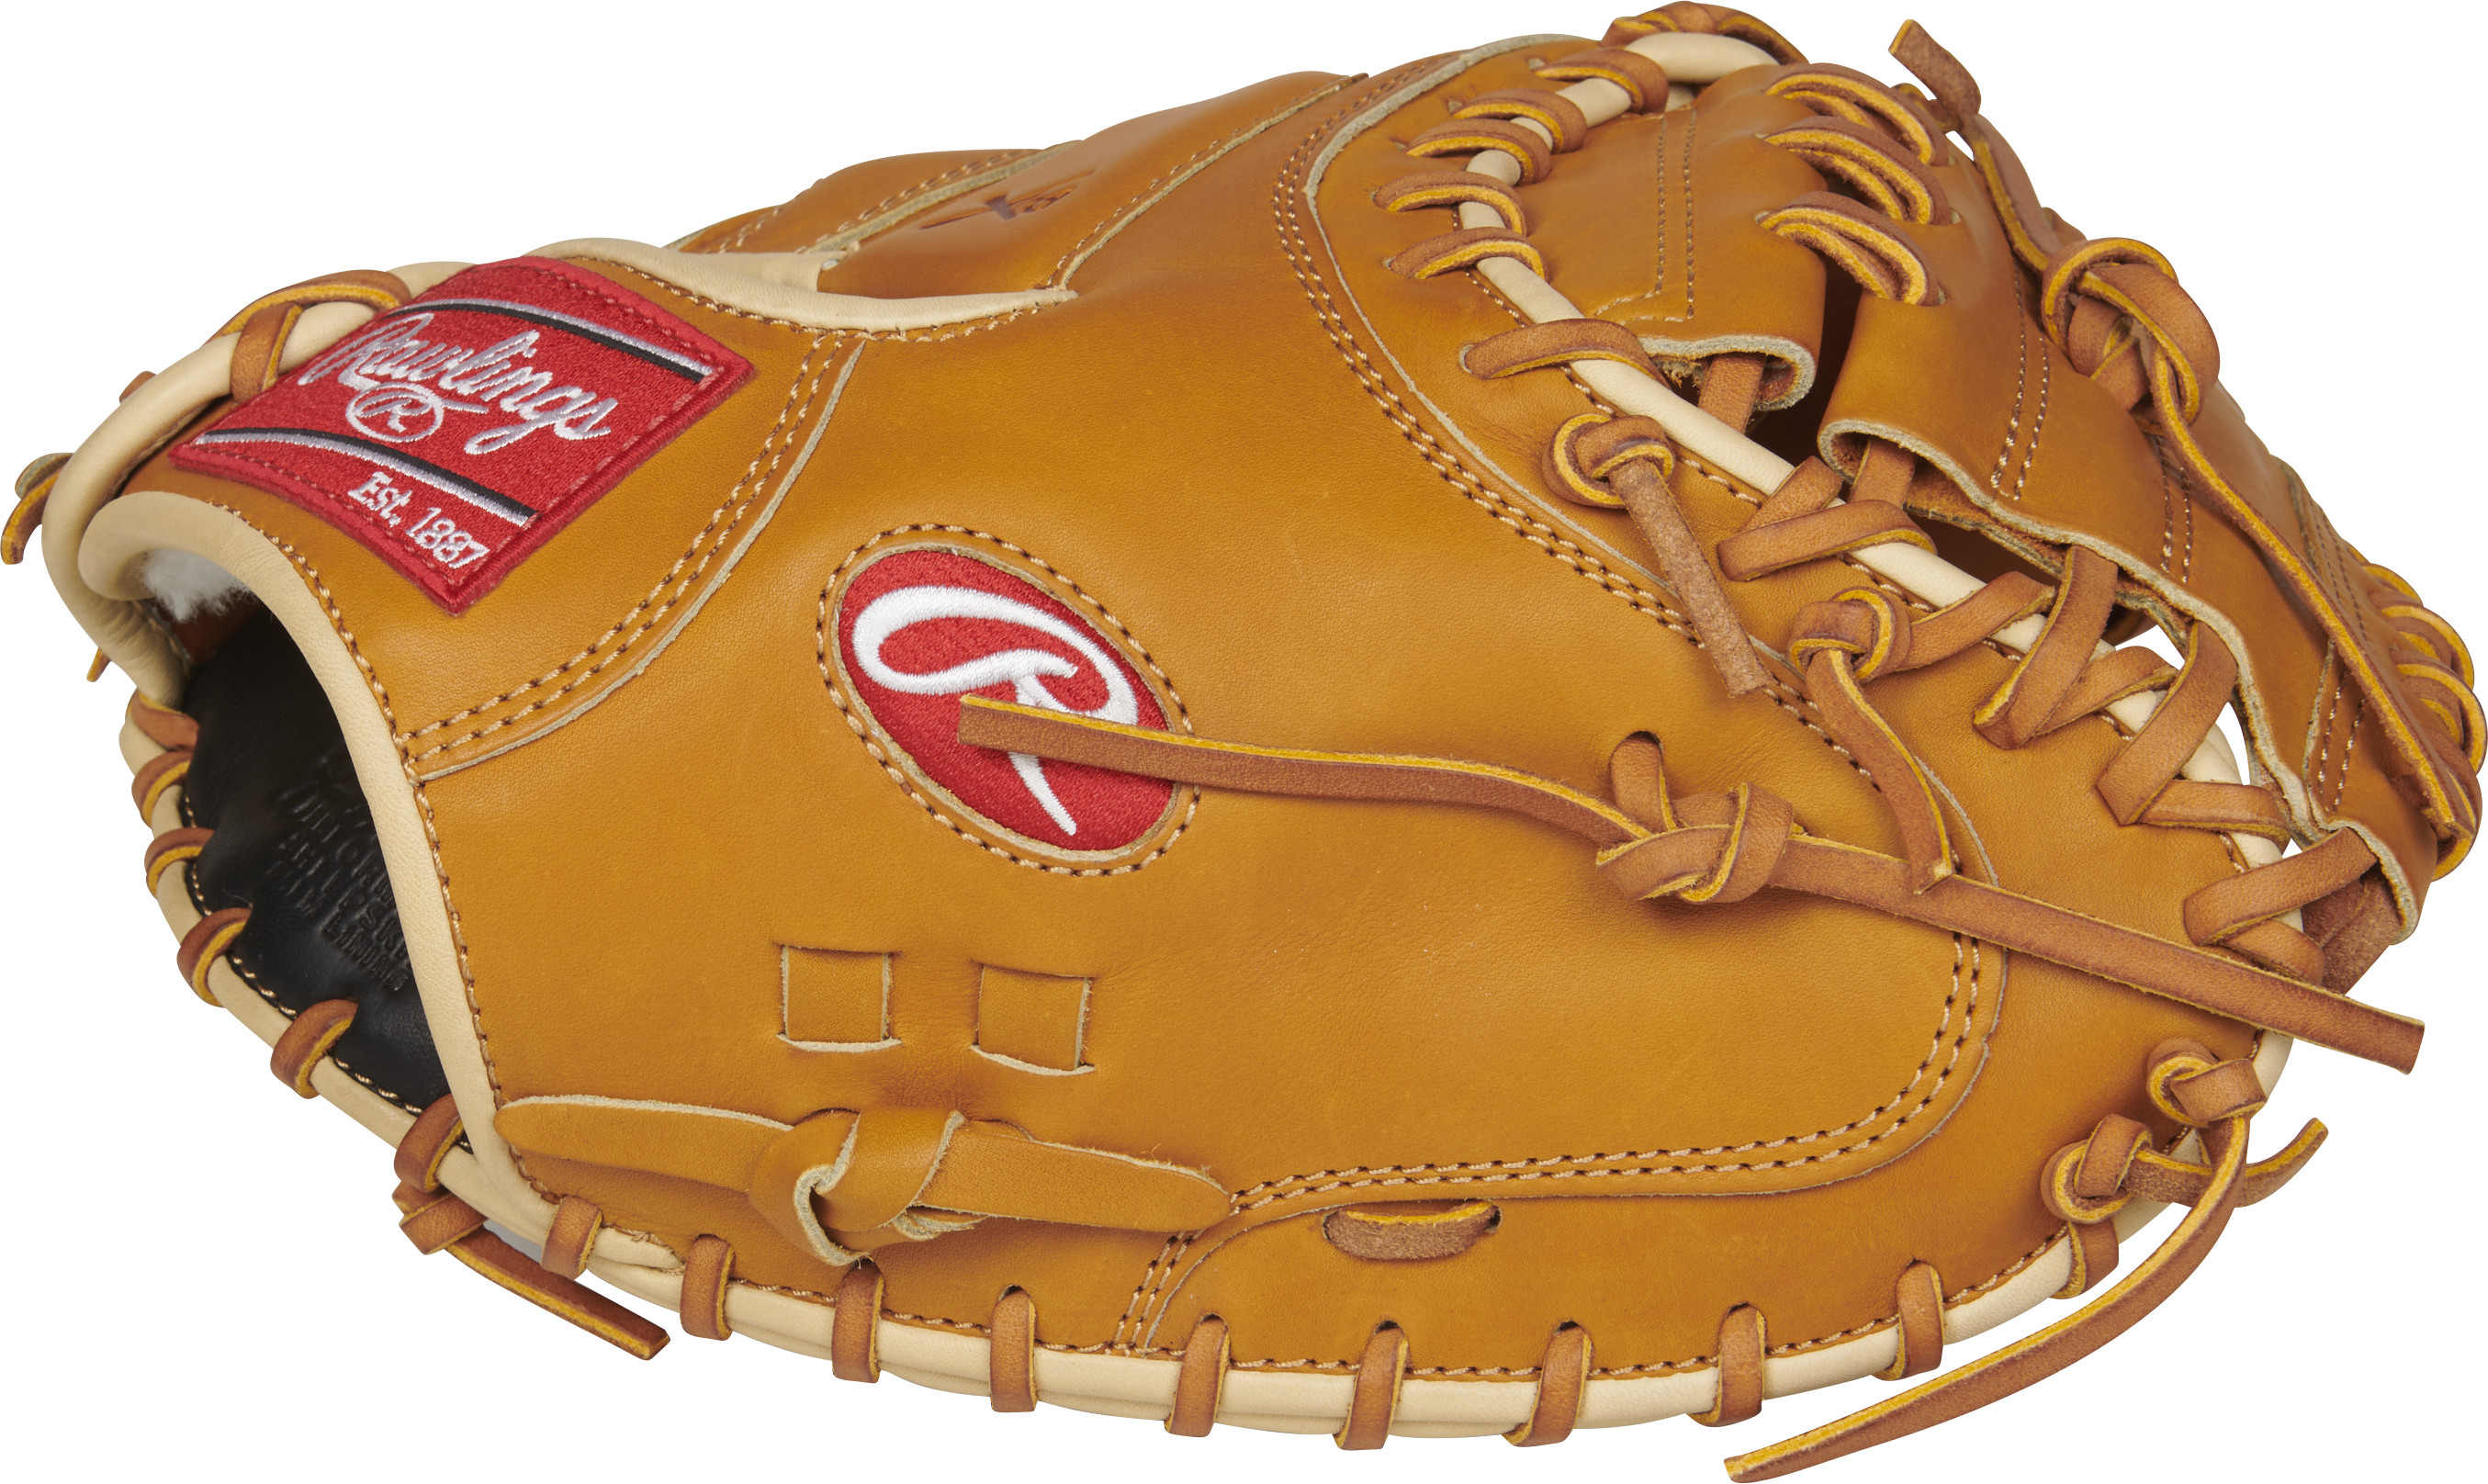 http://www.bestbatdeals.com/images/gloves/rawlings/PROSCM43RT-3.jpg